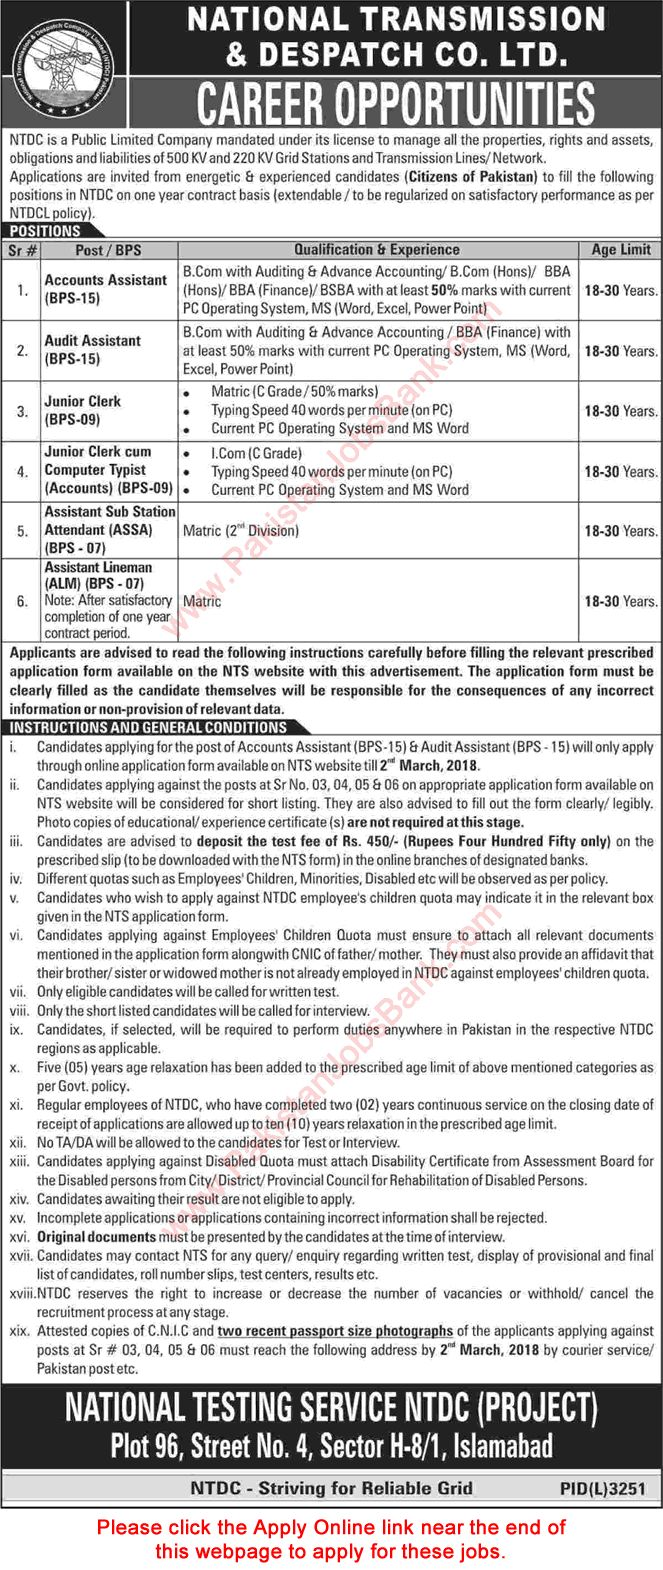 NTDC Jobs 2018 February WAPDA NTS Online Application Form National Transmission and Despatch Company Latest